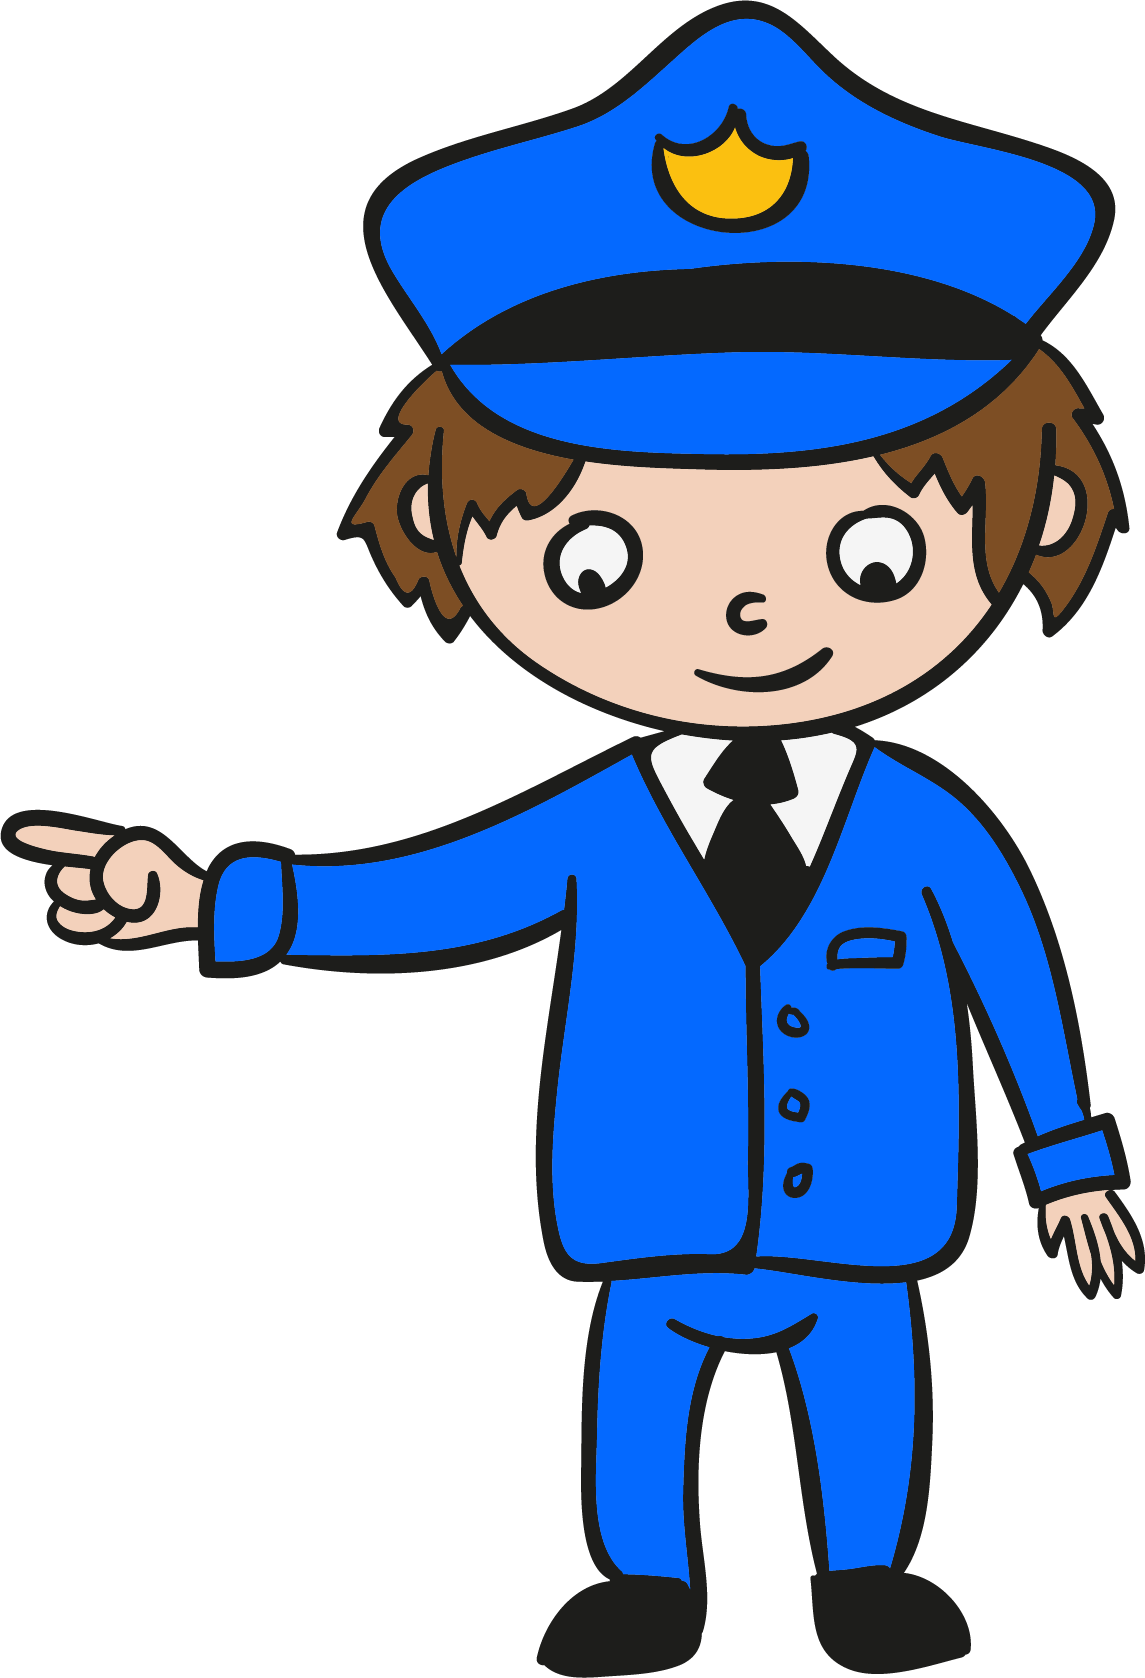 Lost vector person clipart. Police officer clip art